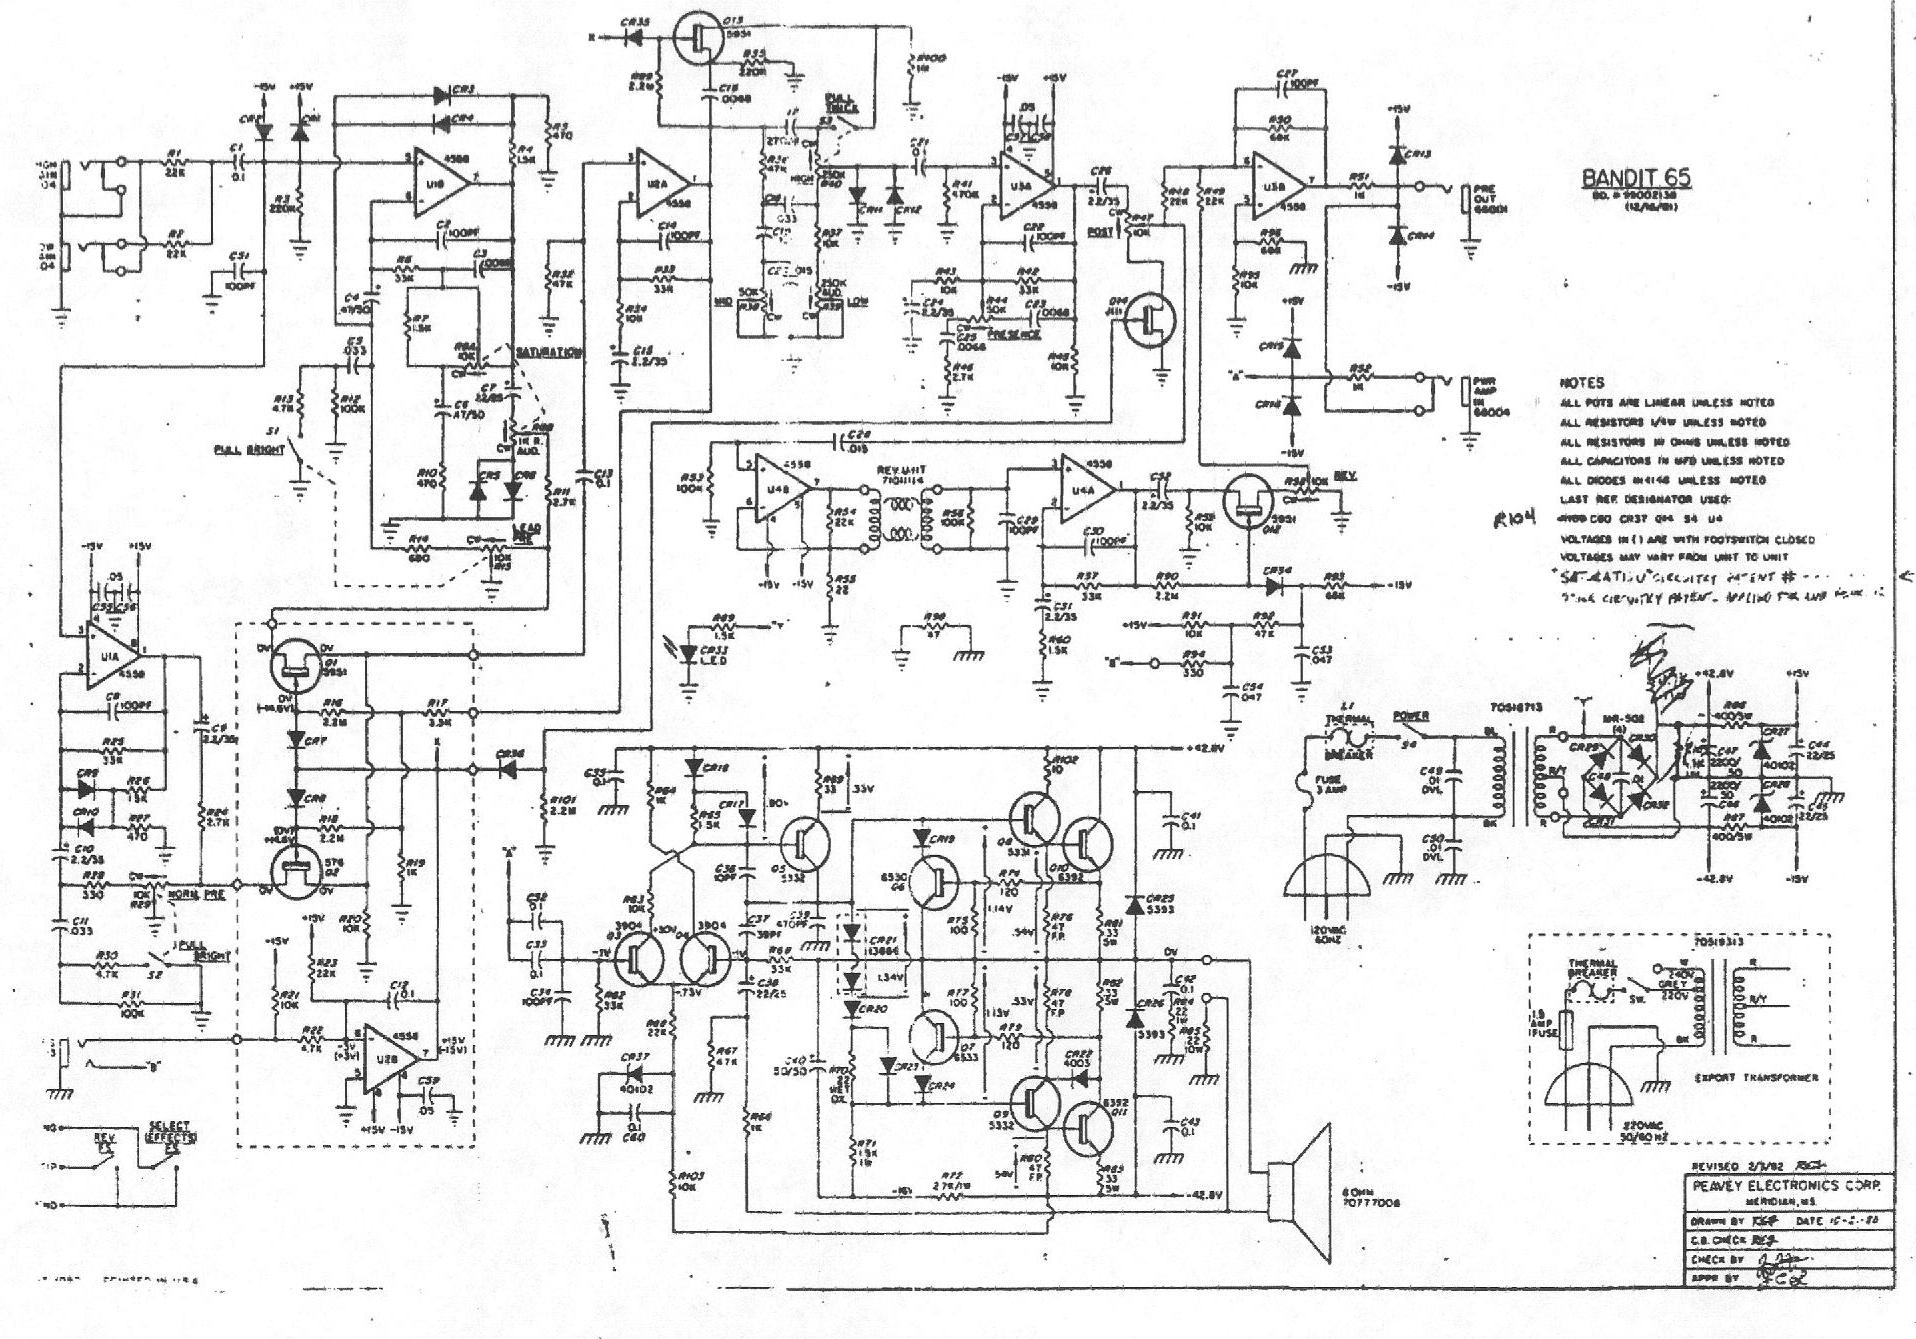 hight resolution of new page 1998 peavey blazer 158 schematic peavey bandit